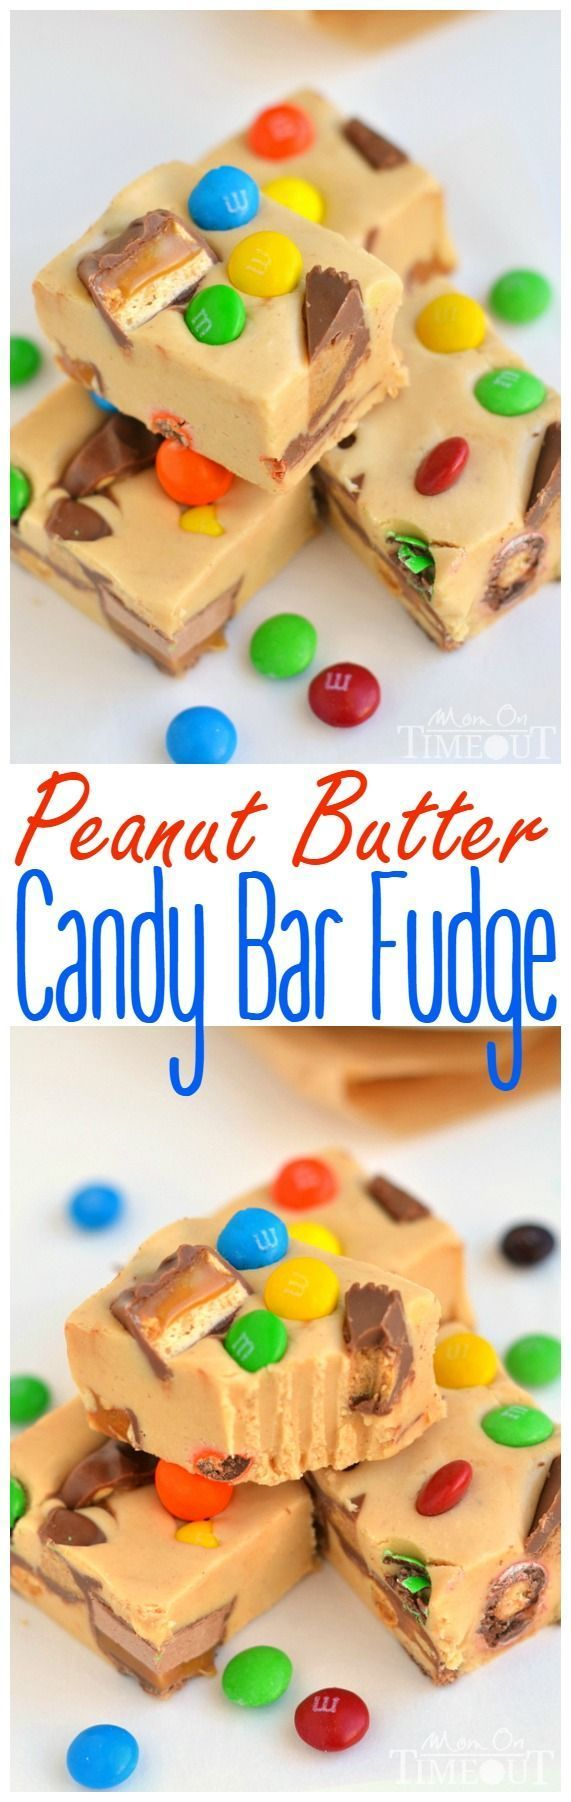 An excellent recipe for using up leftover candy and the perfect way to satisfy your sweet tooth - you simply must try this easy Peanut Butter Candy Bar Fudge recipe!   MomOnTimeout.com   #candy